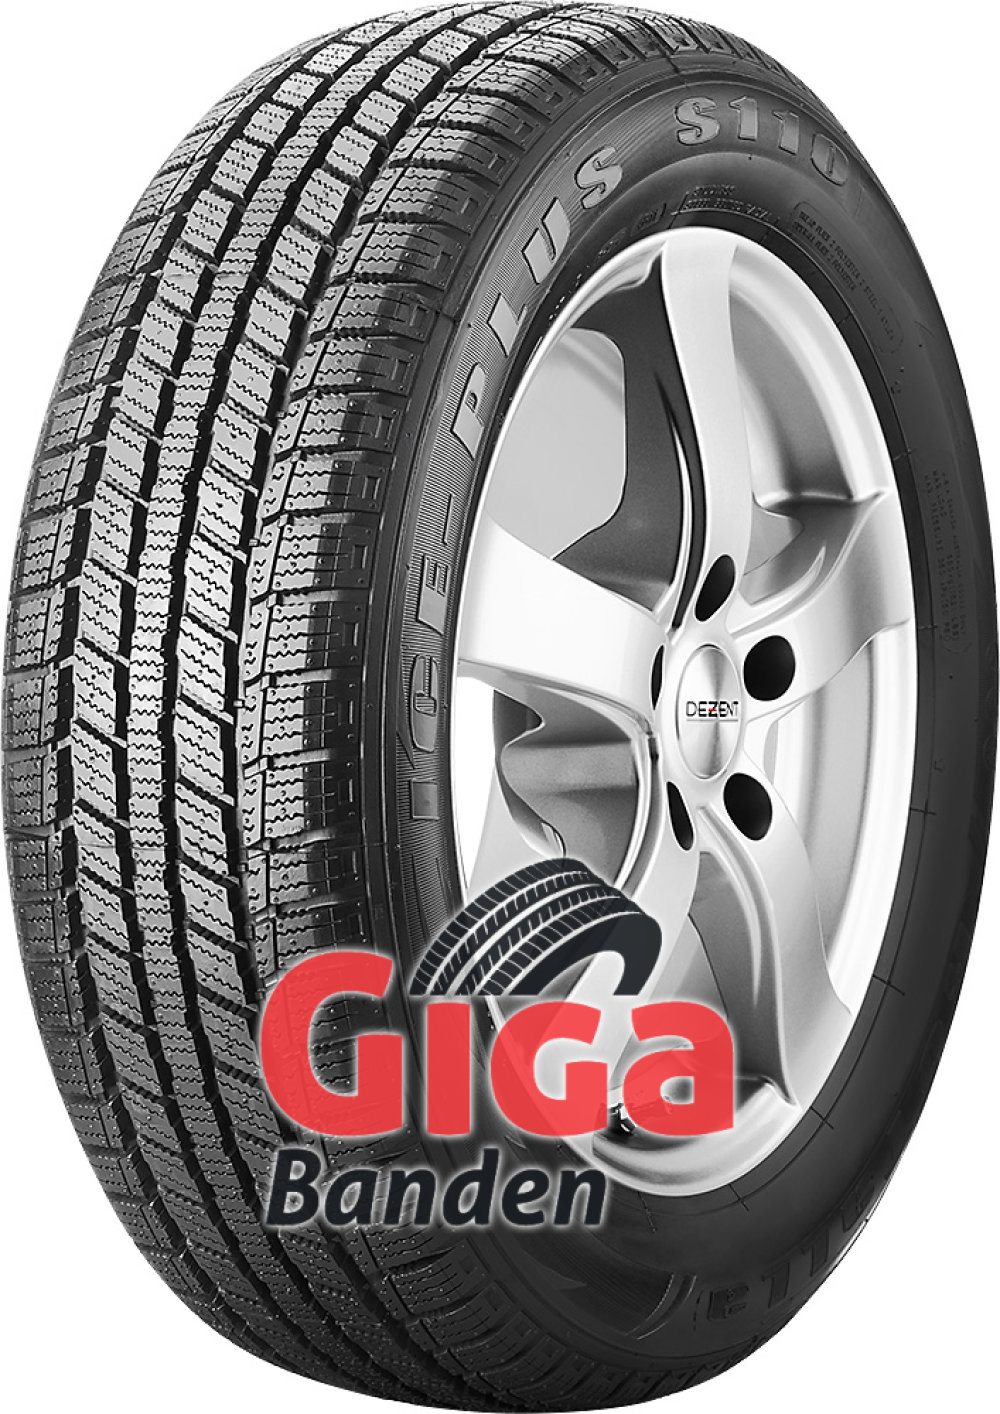 Rotalla Ice-Plus S110 ( 205/75 R16C 110/108R )